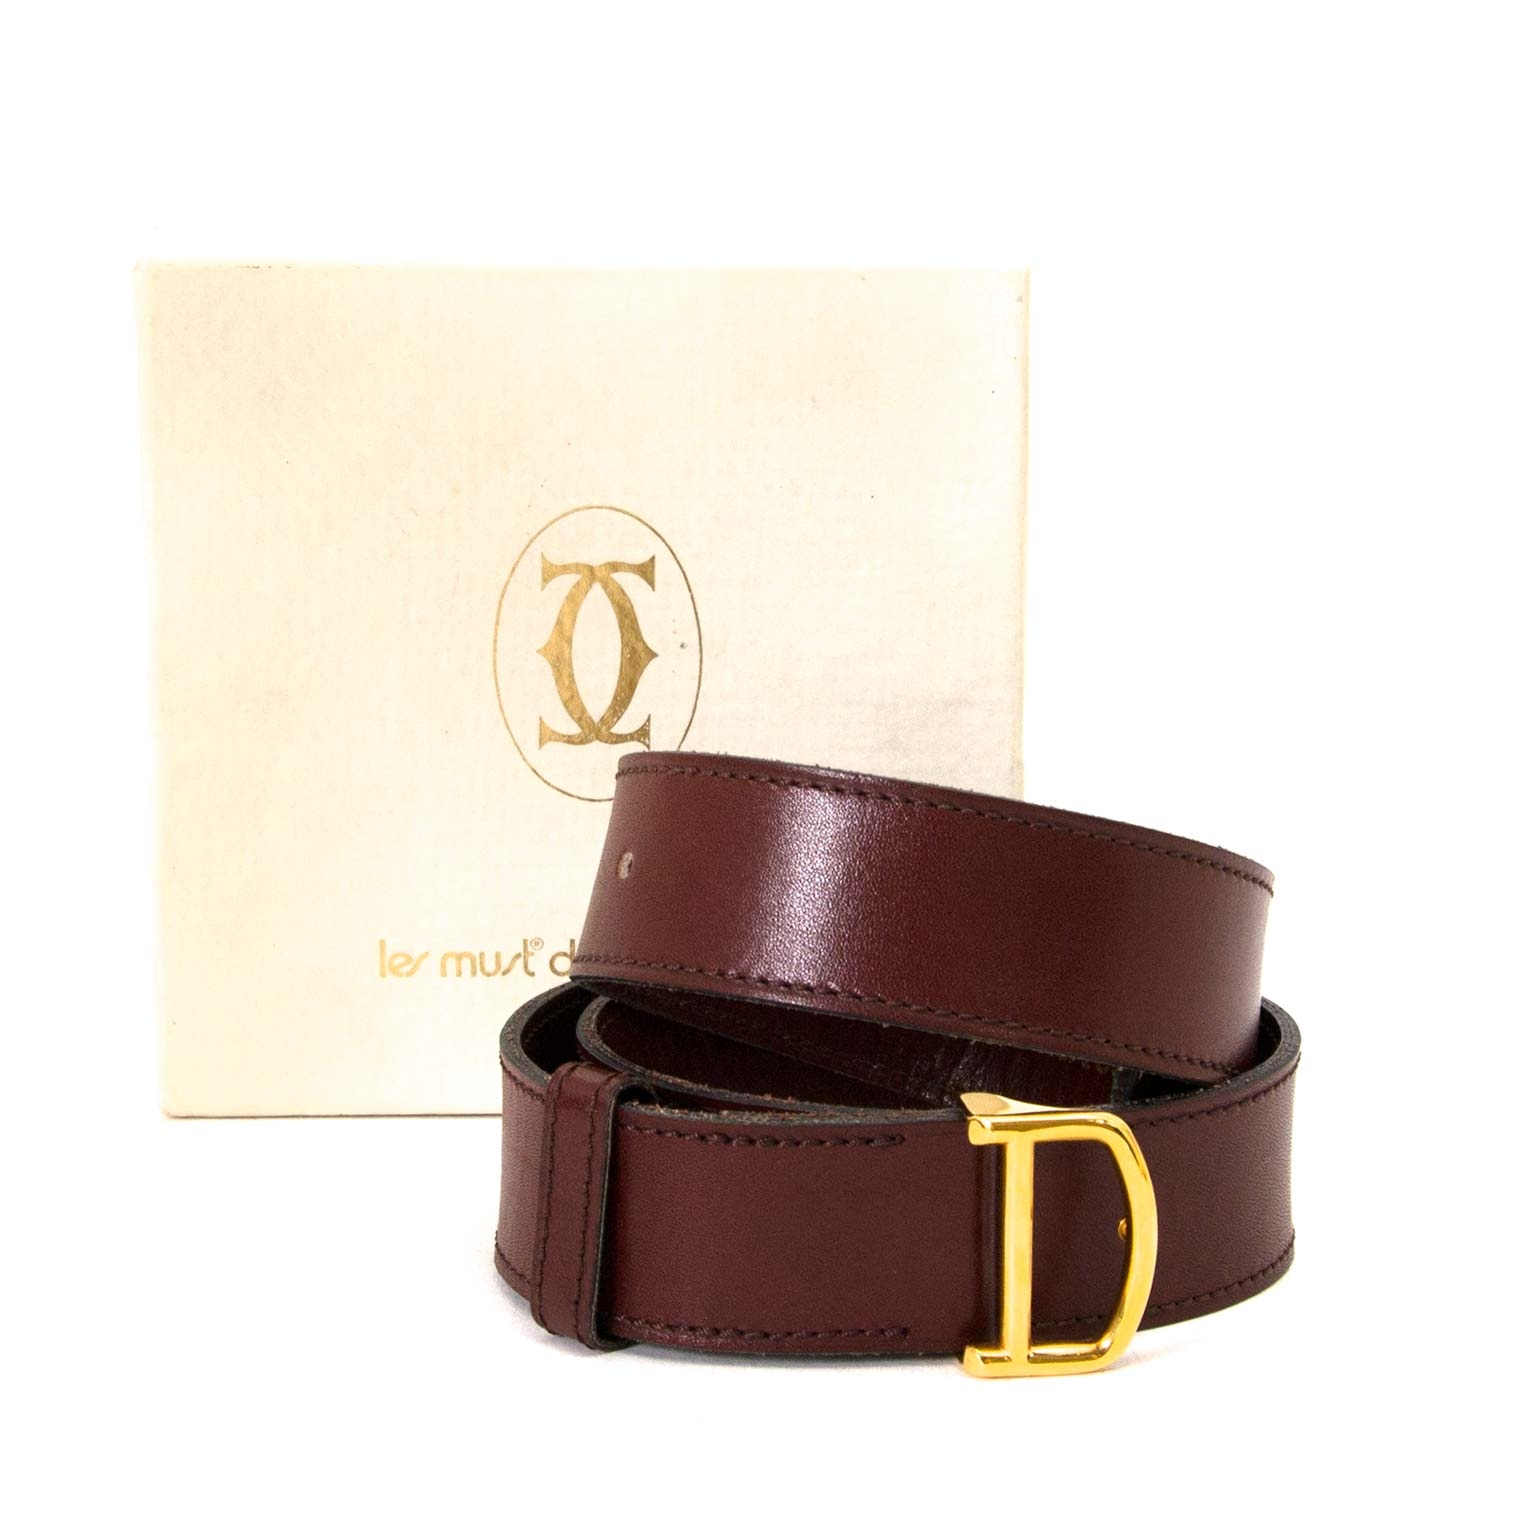 Cartier Bordeaux Leather Belt - Size 66-74 now for sale at labellov vintage fashion webshop belgium